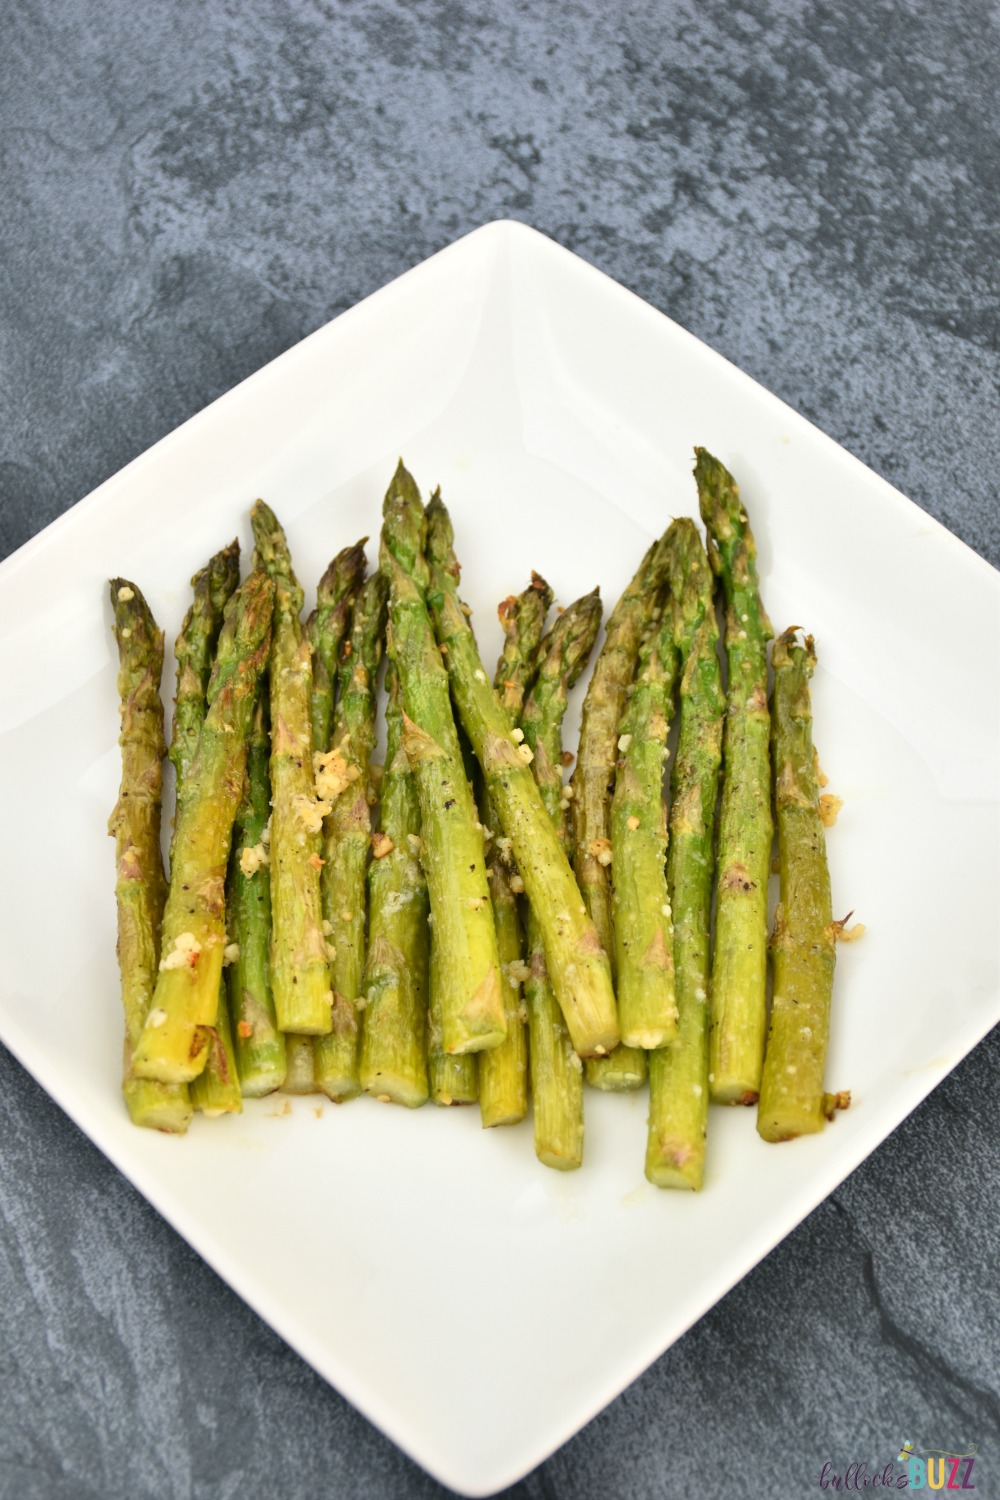 Tender spears of asparagus are seasoned and roasted to perfection in this quick and easy Oven Roasted Asparagus recipe.